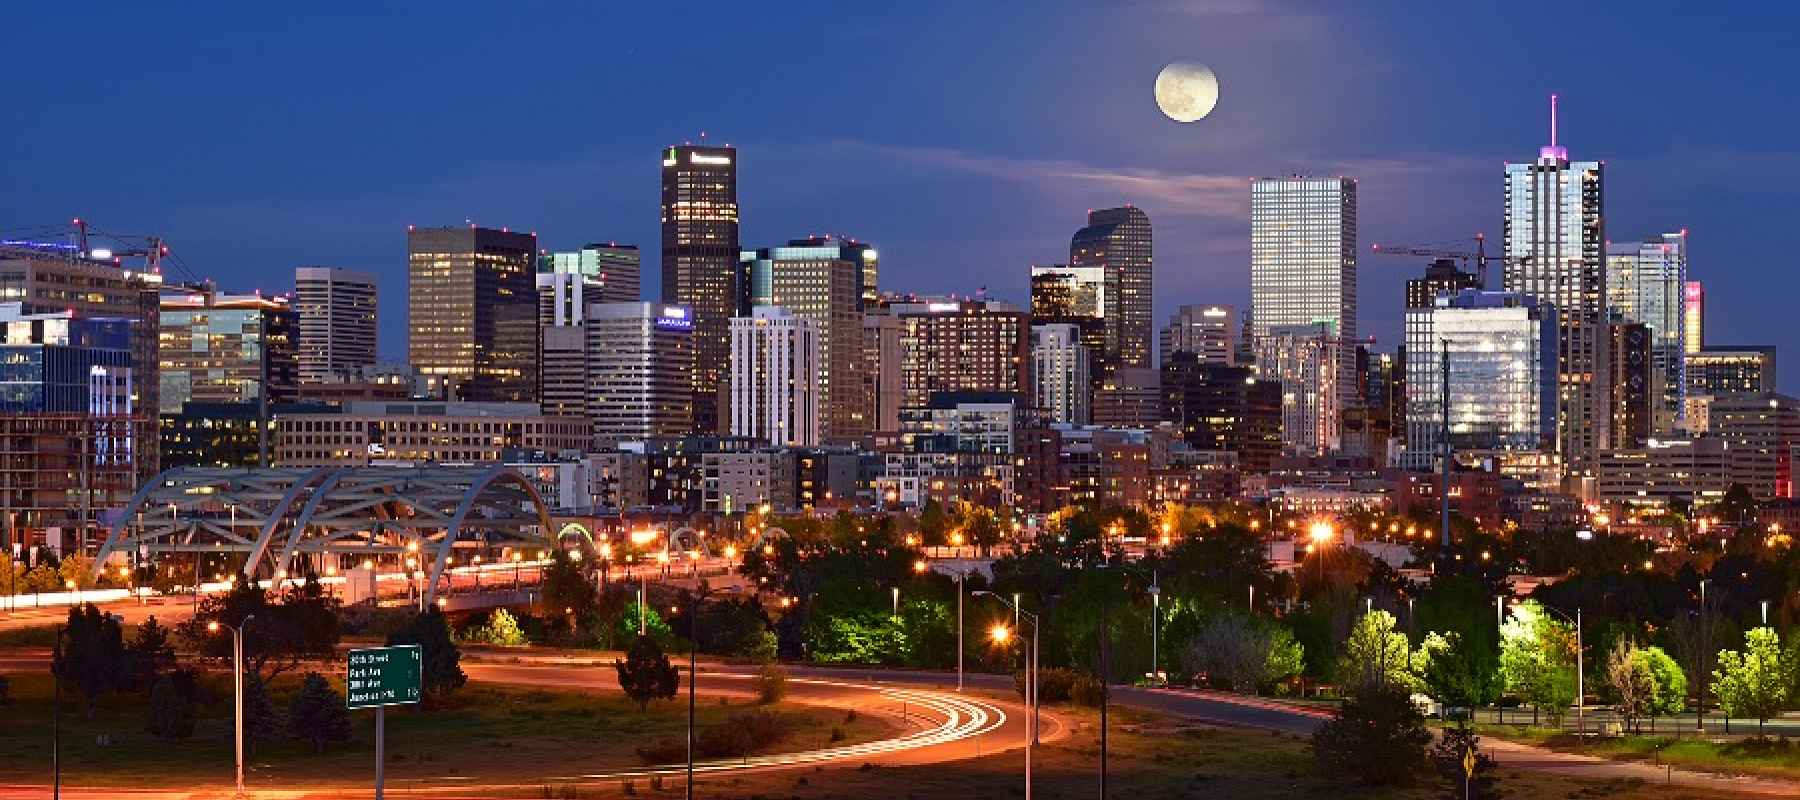 5 Jaw-Dropping Places to Stay in Denver